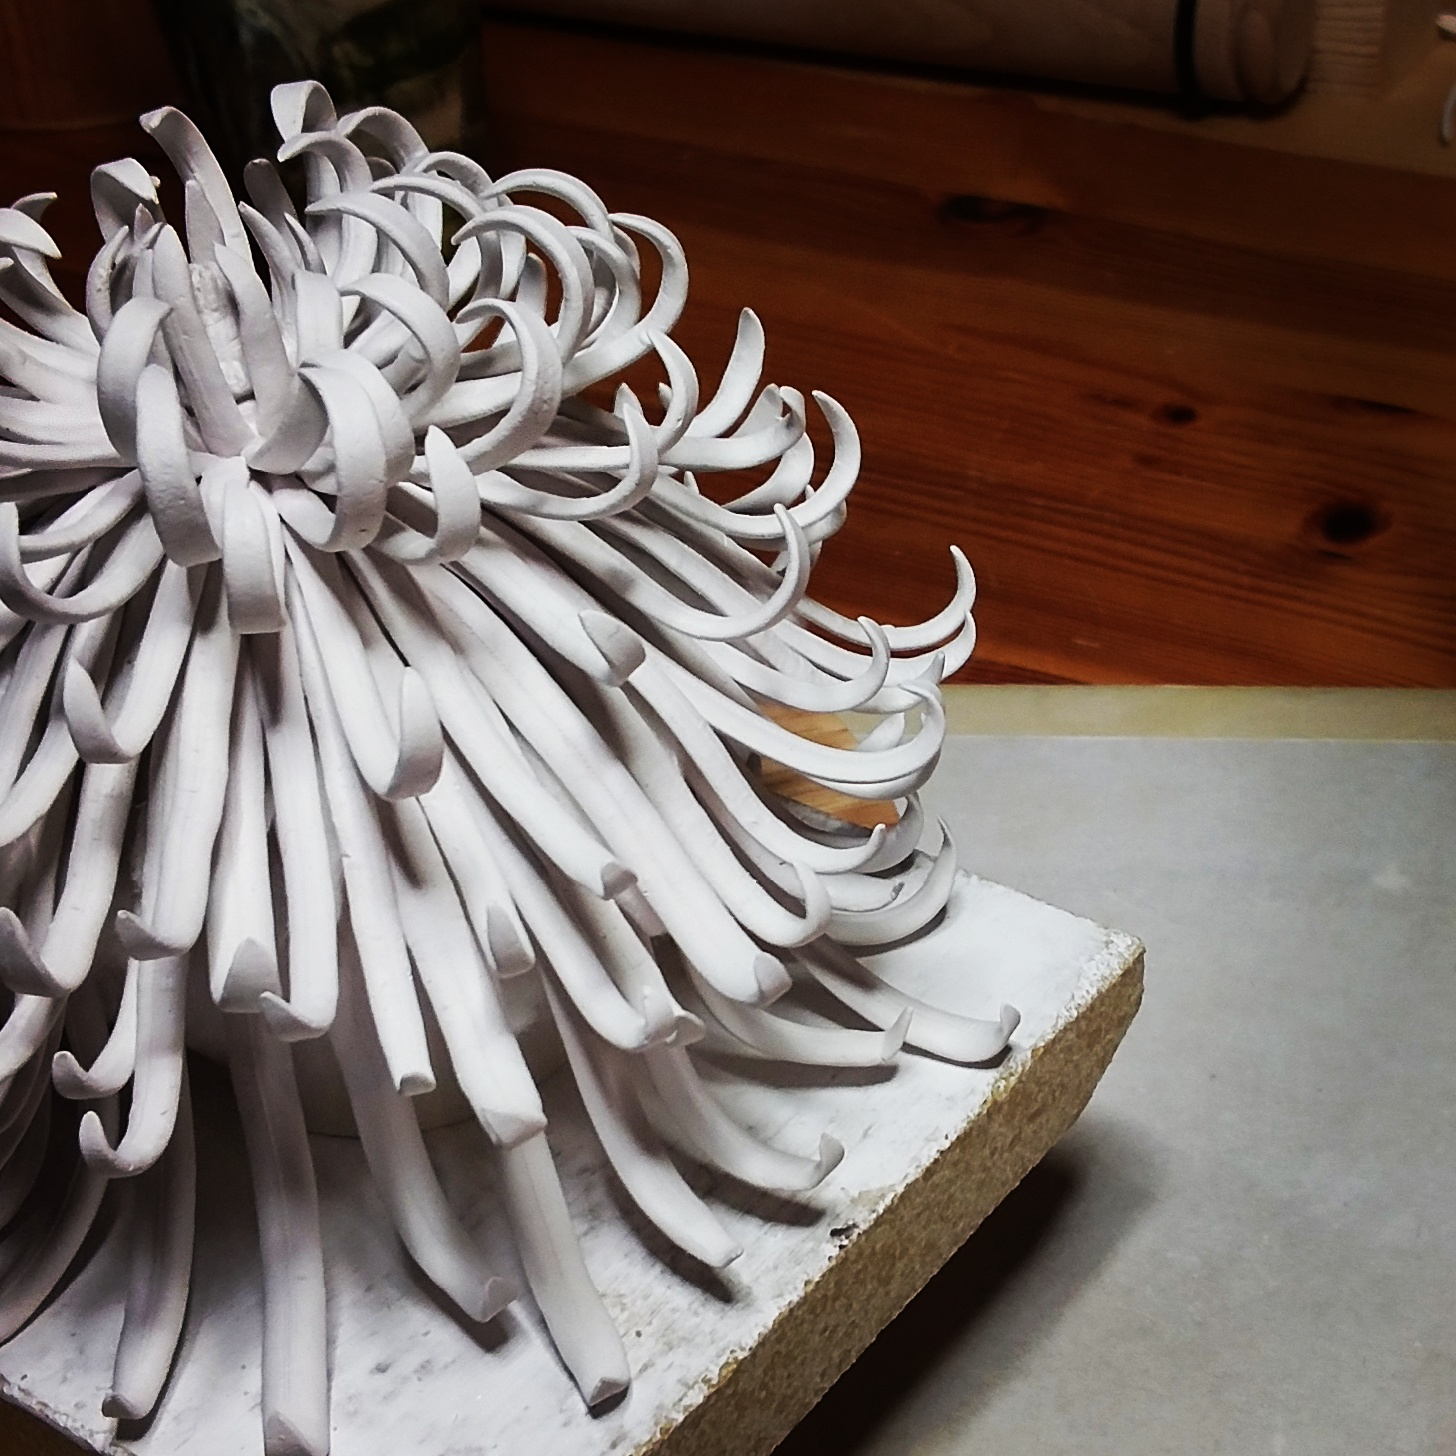 Porcelain chrysanthemum